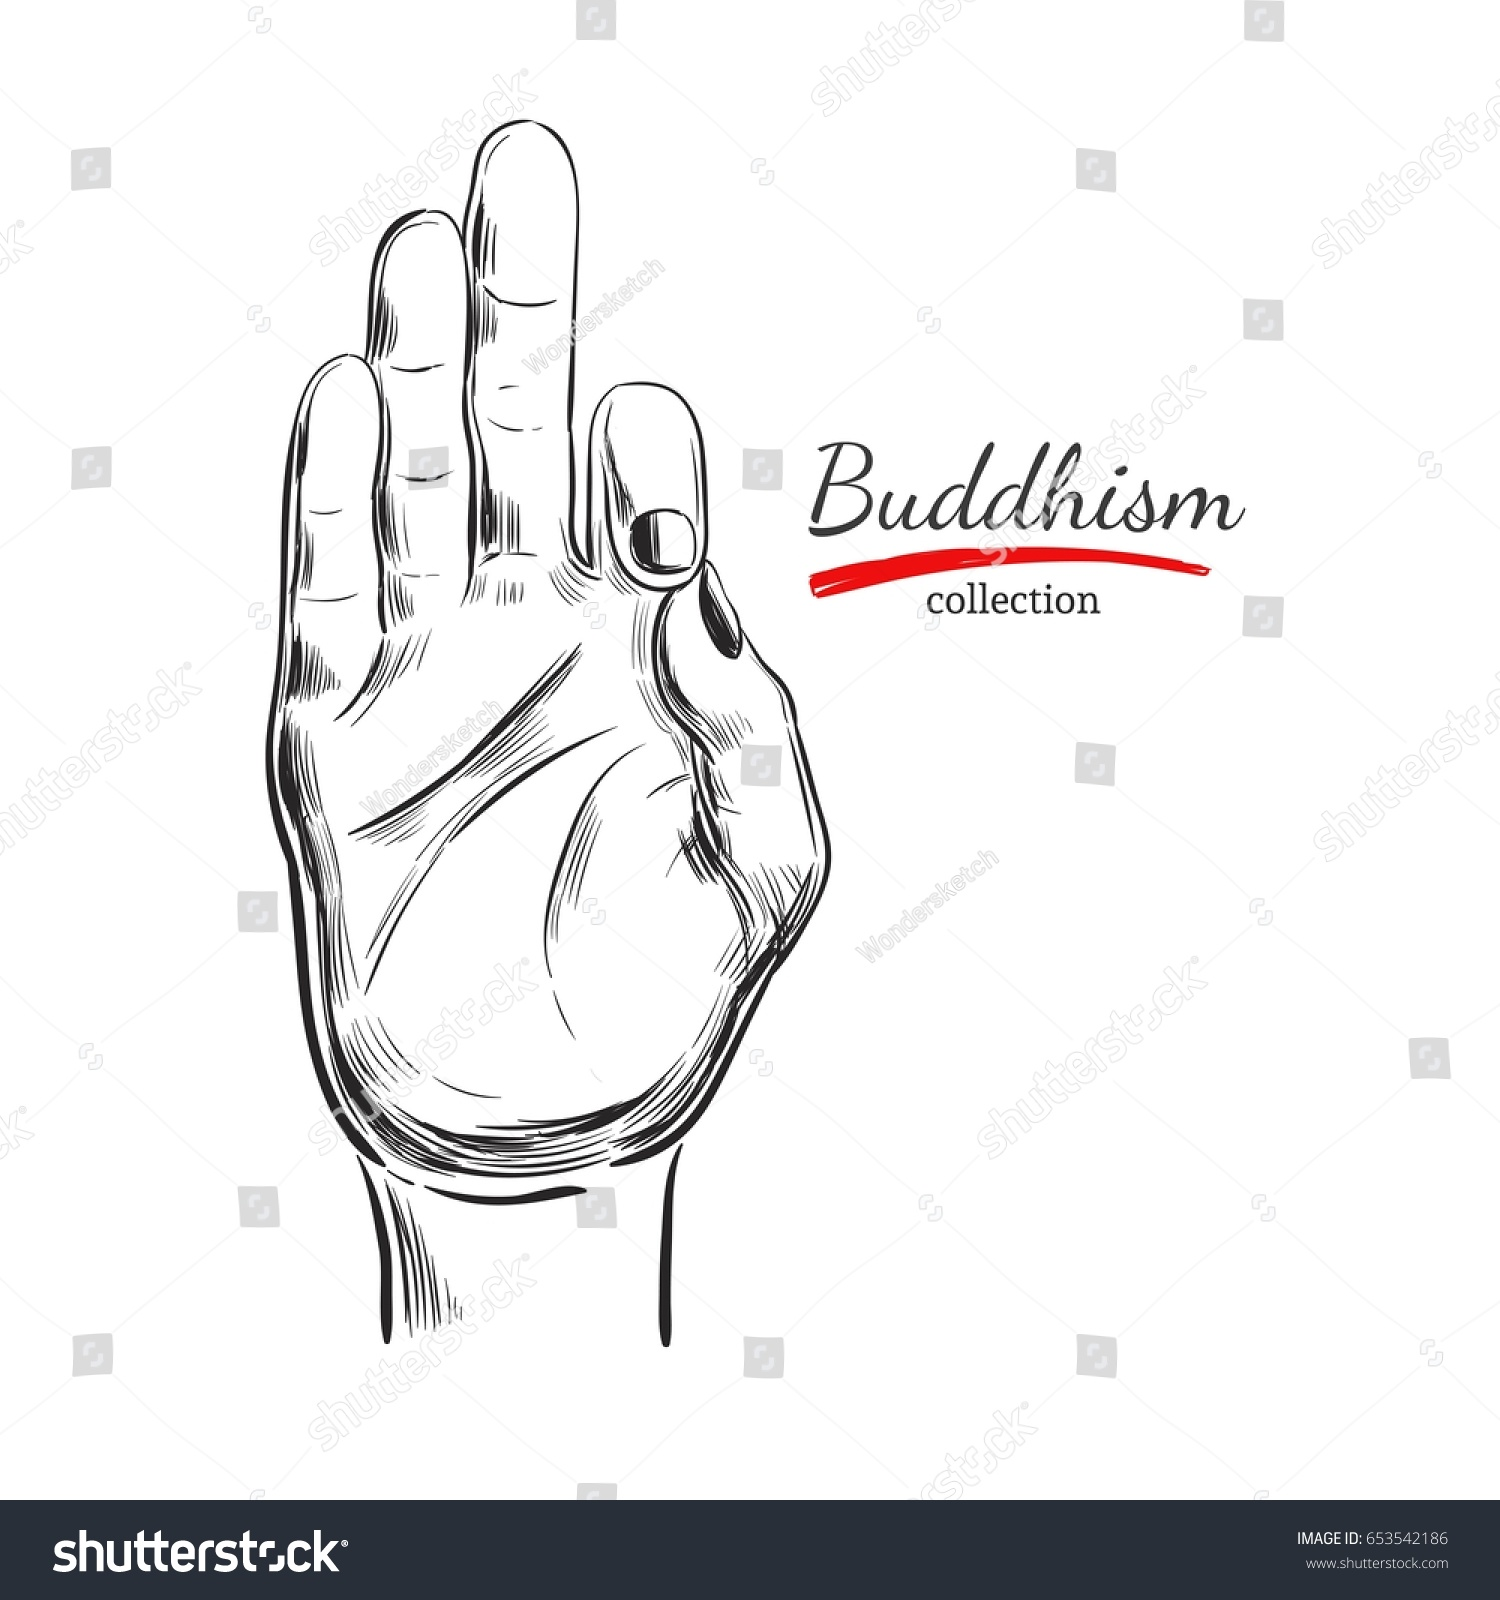 Jnana Mudra Buddhism SpiritualityYoga Print Vector Hand Drawn Illustration Sketch